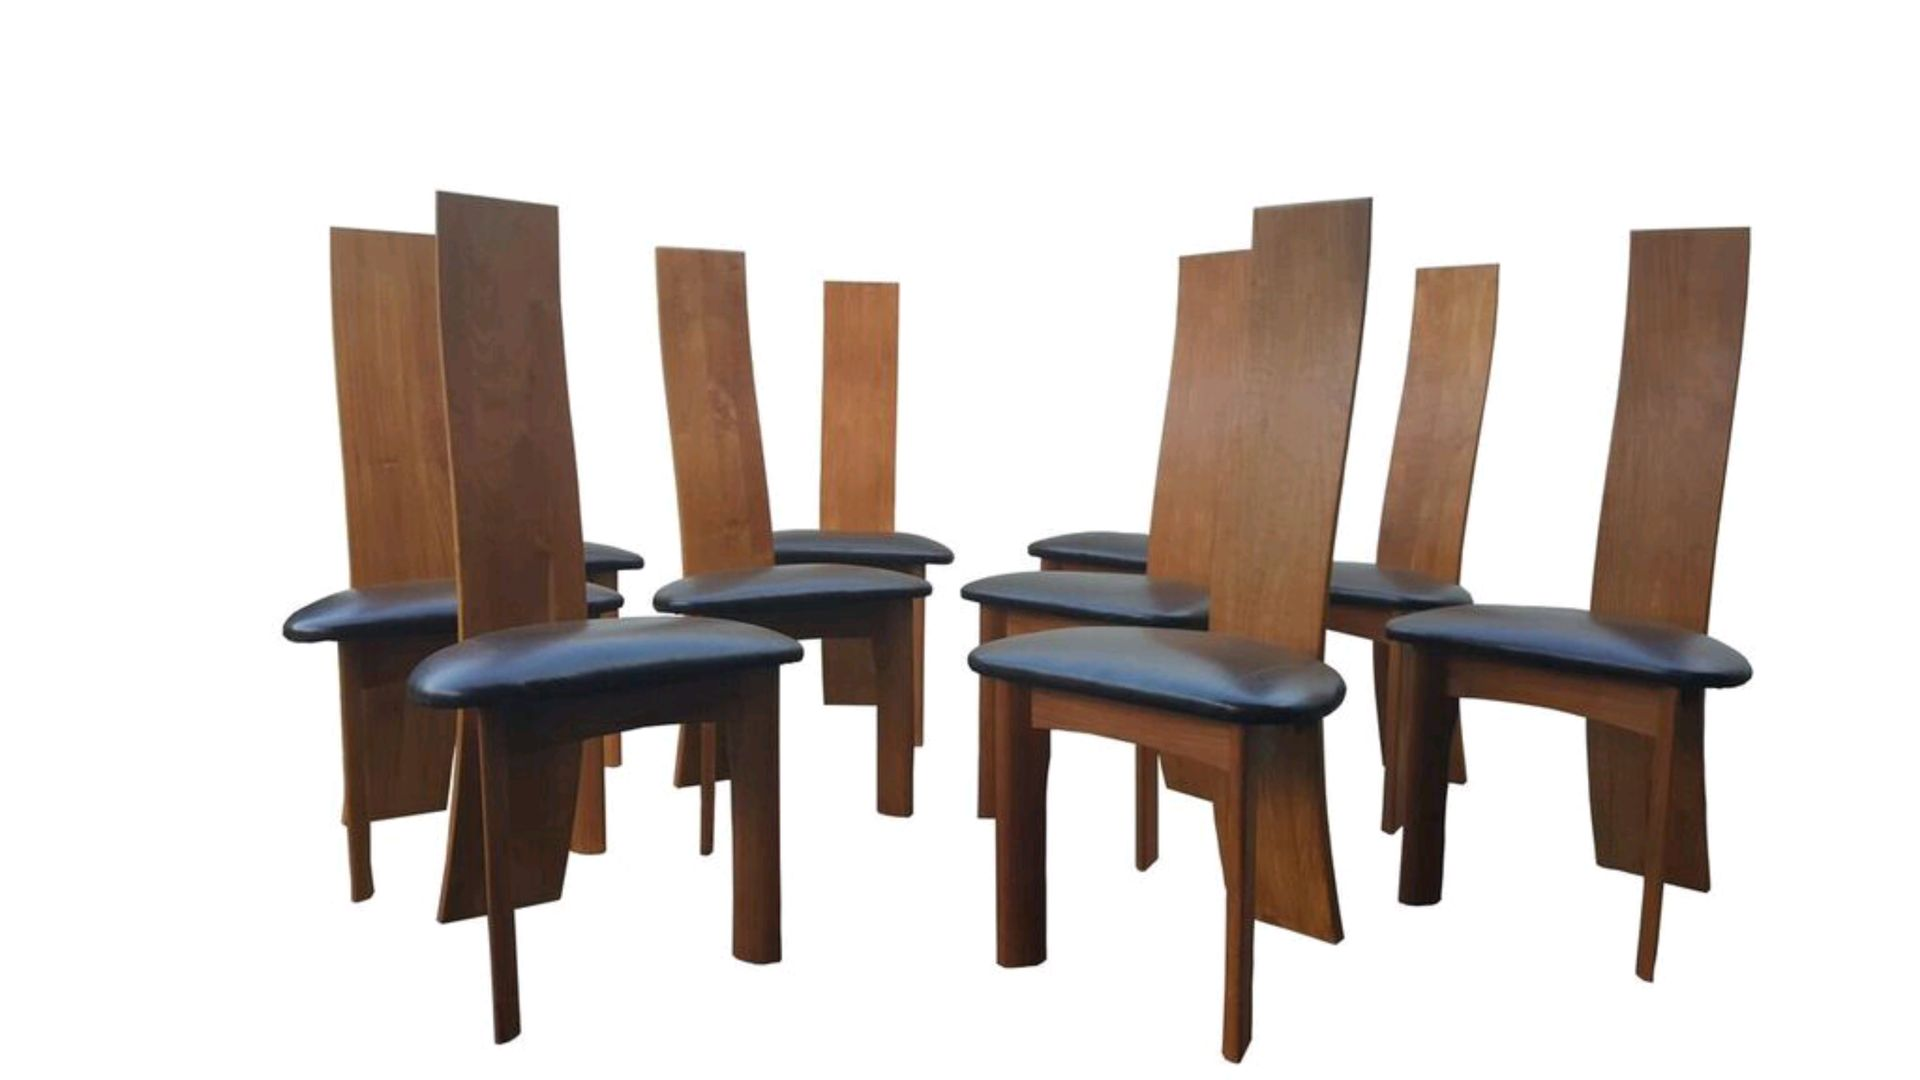 Danish modern dining chairs by bob og dries van den bergh for Modern dining chairs ireland